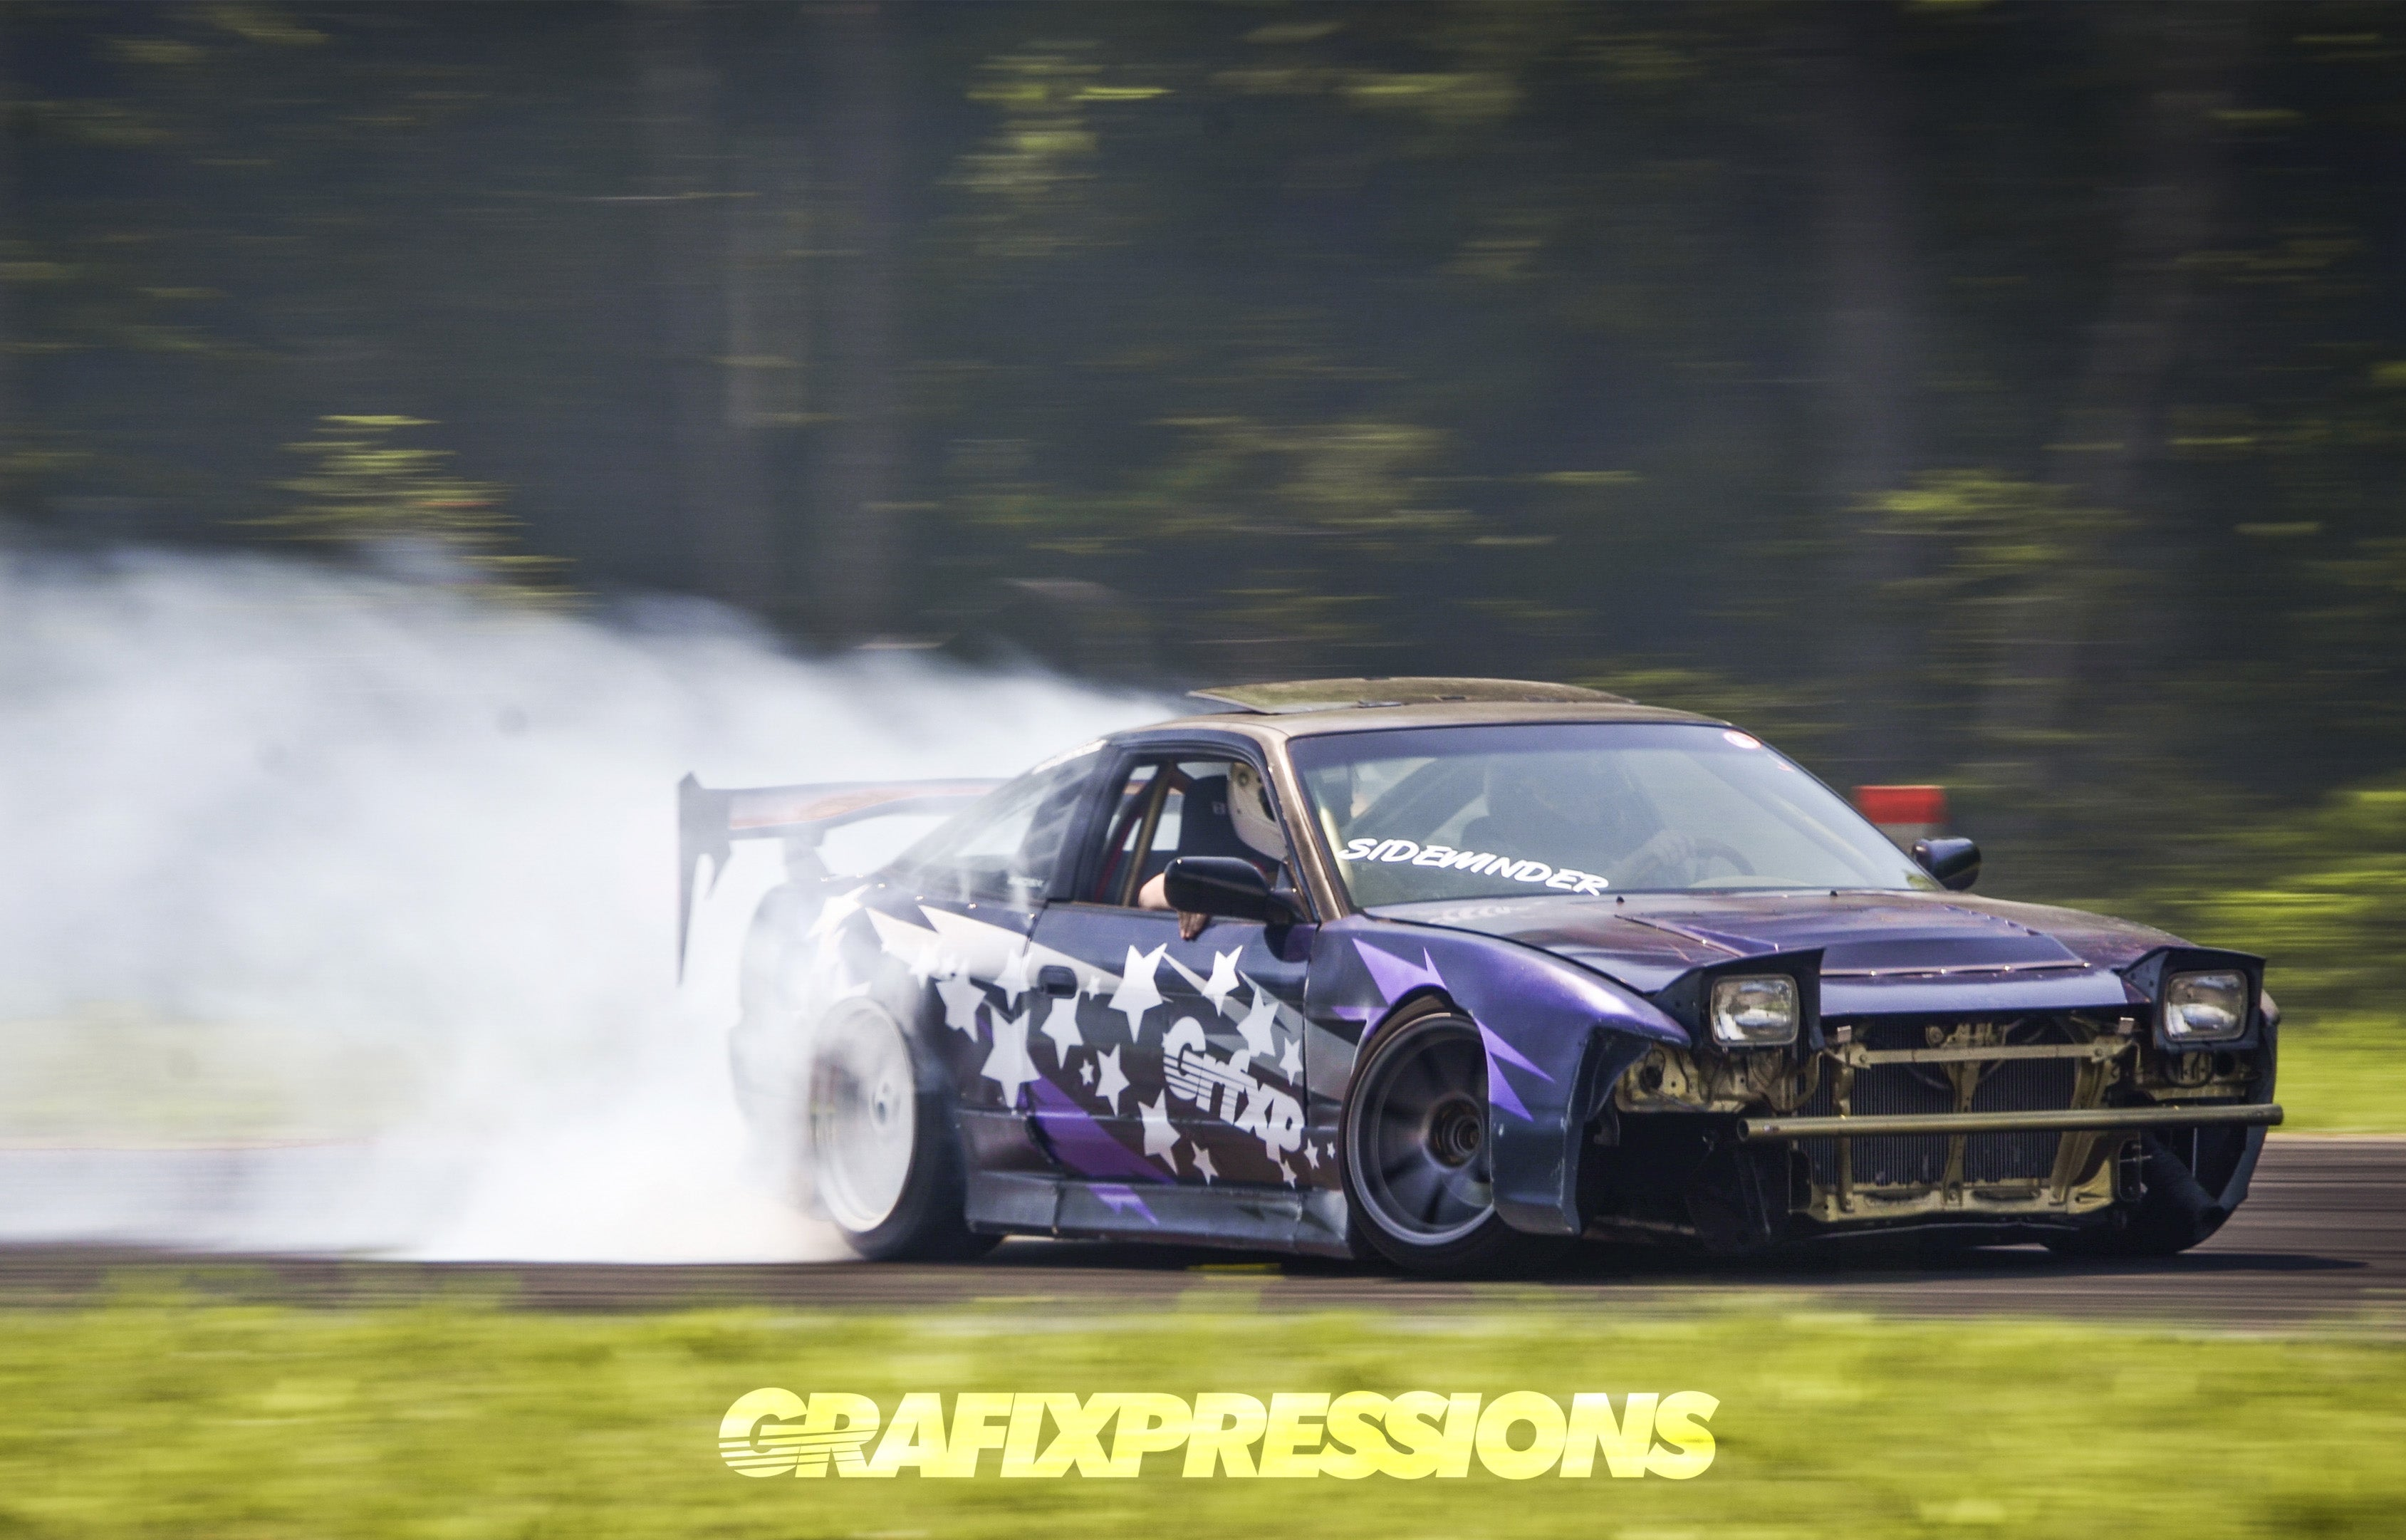 bobby beck nissan 240 180 silvia drift car livery stars grfxp grafixpressions lock city drift